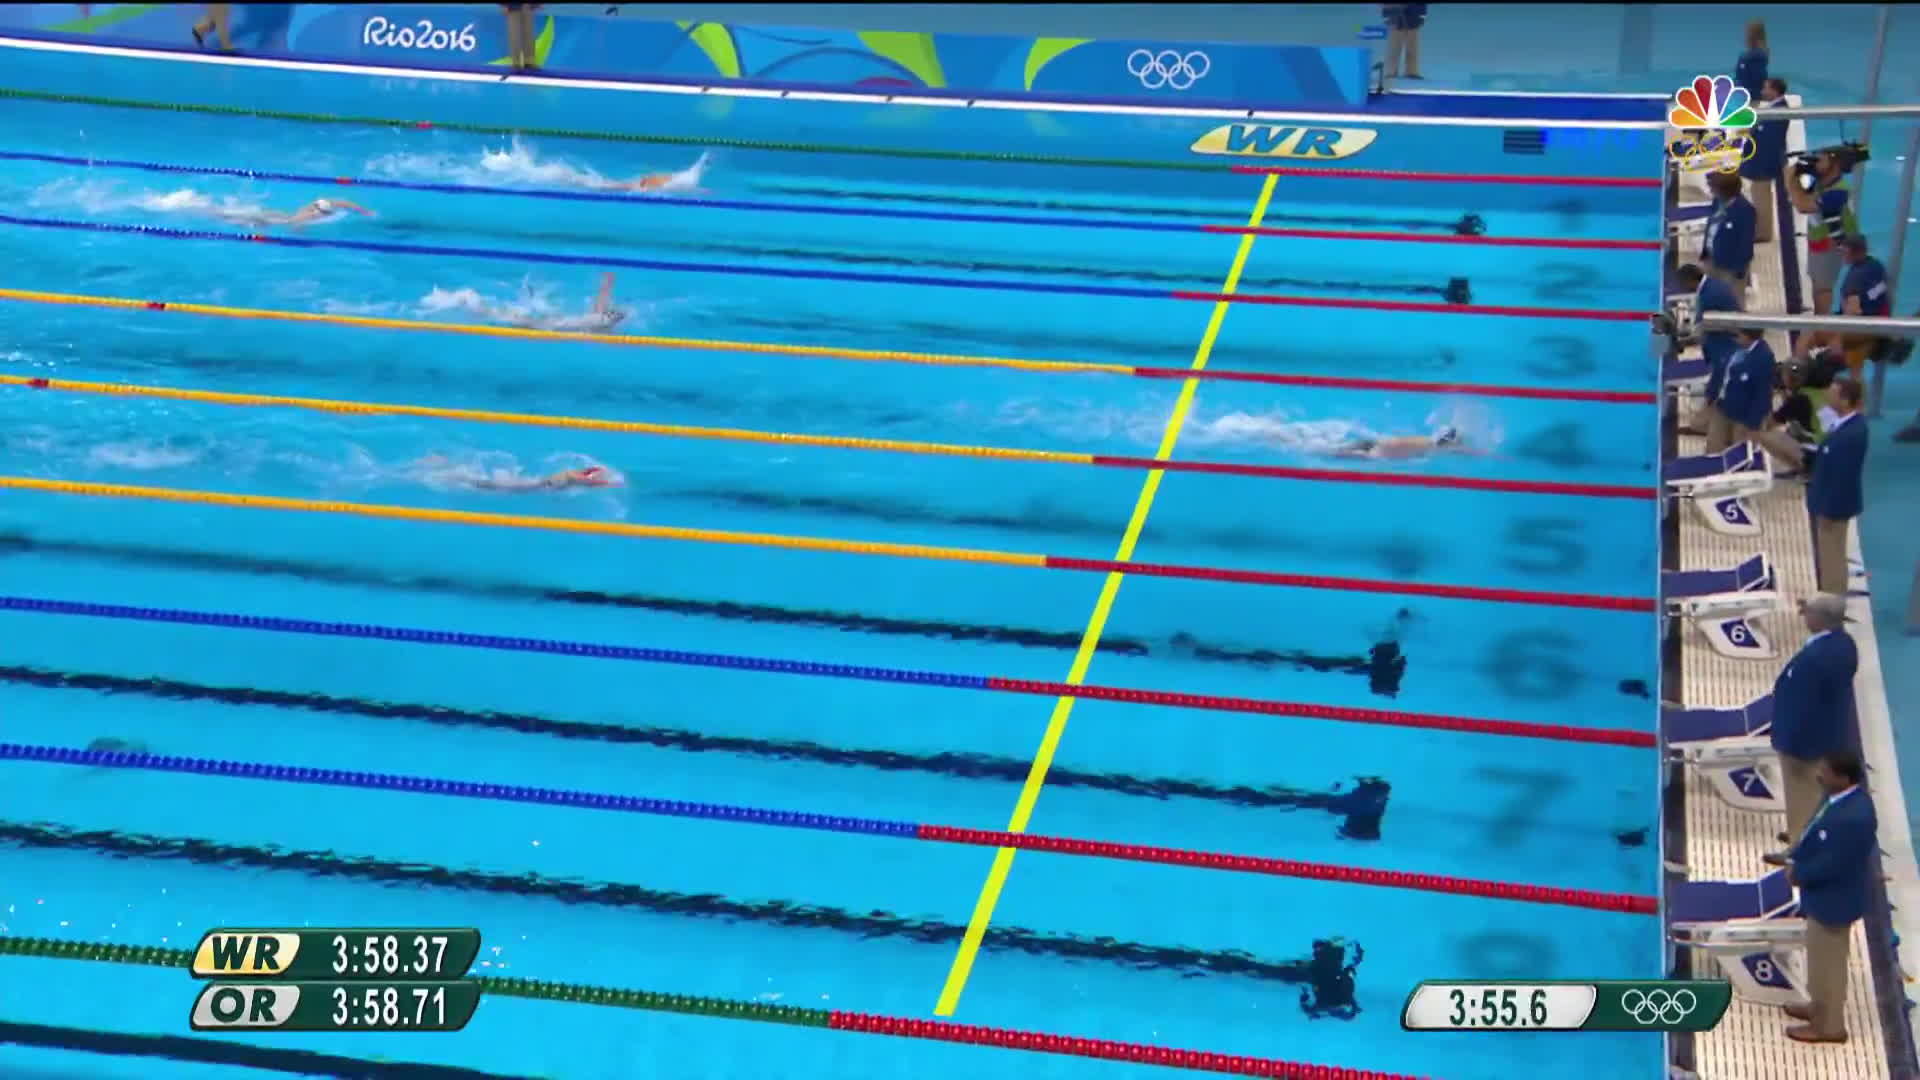 nbc sports, olymgifs, olympics, Ledecky shatters own world record in 400m freestyle gold win GIFs